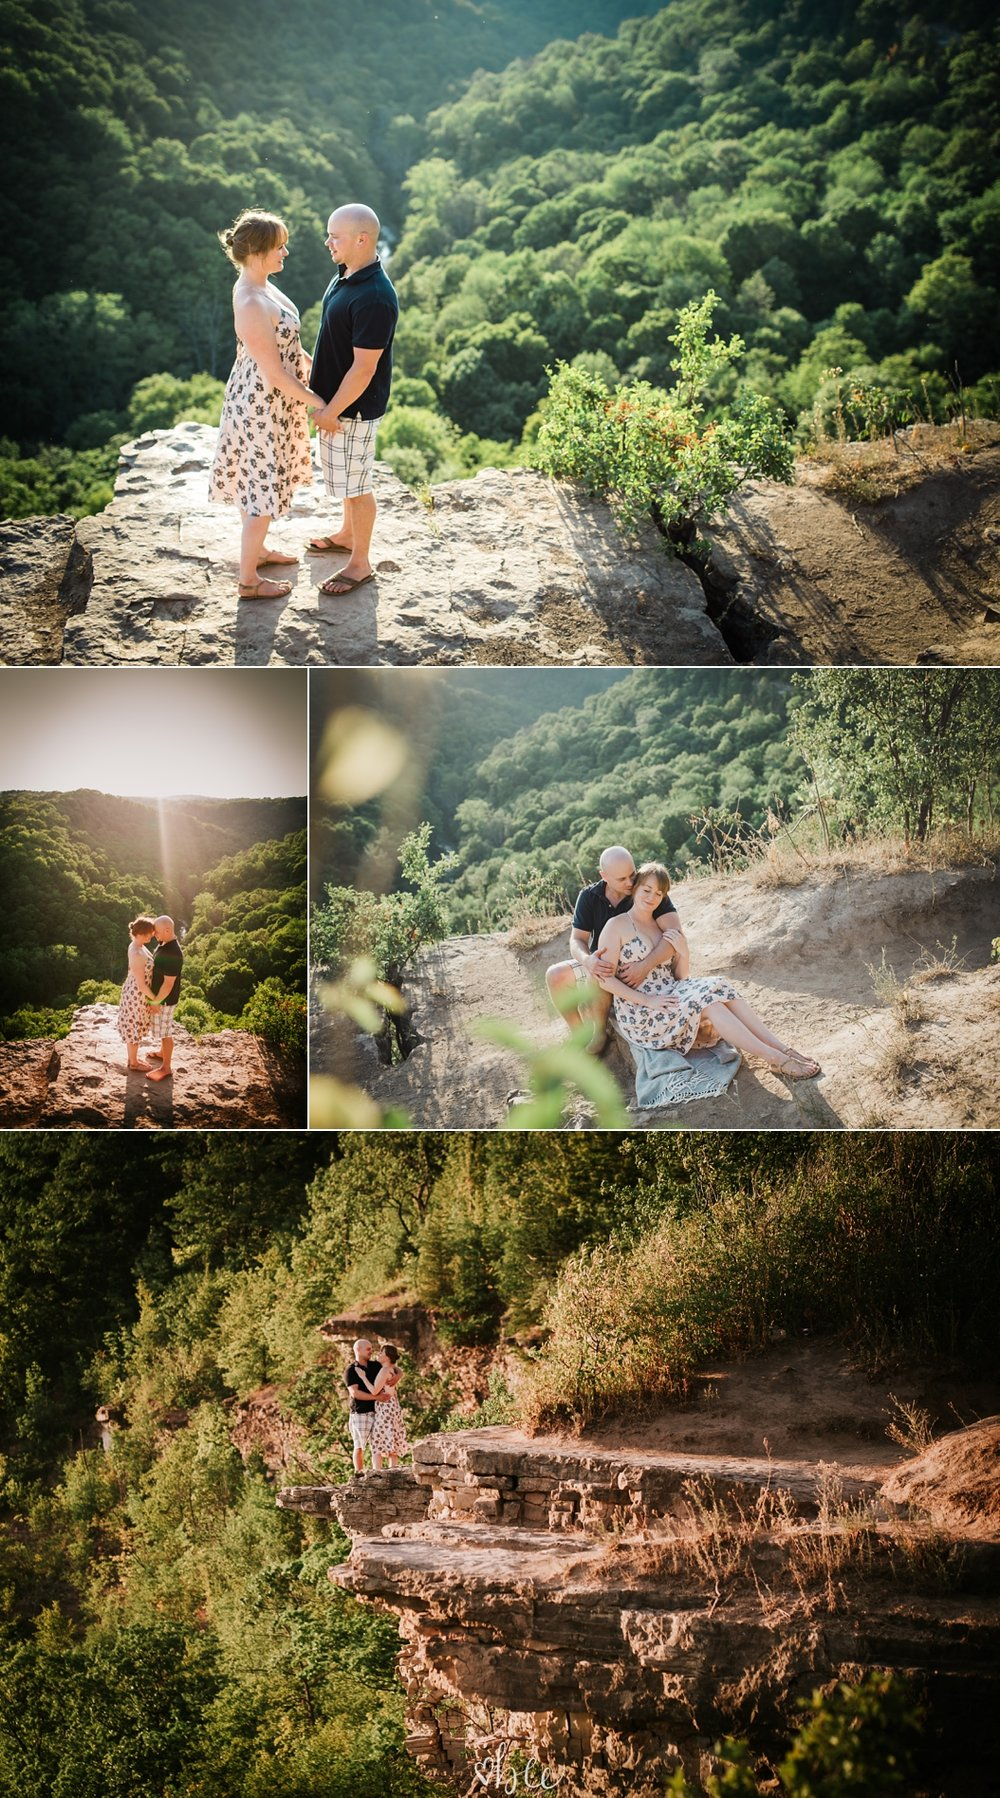 hamilton engagment photography-3.jpg